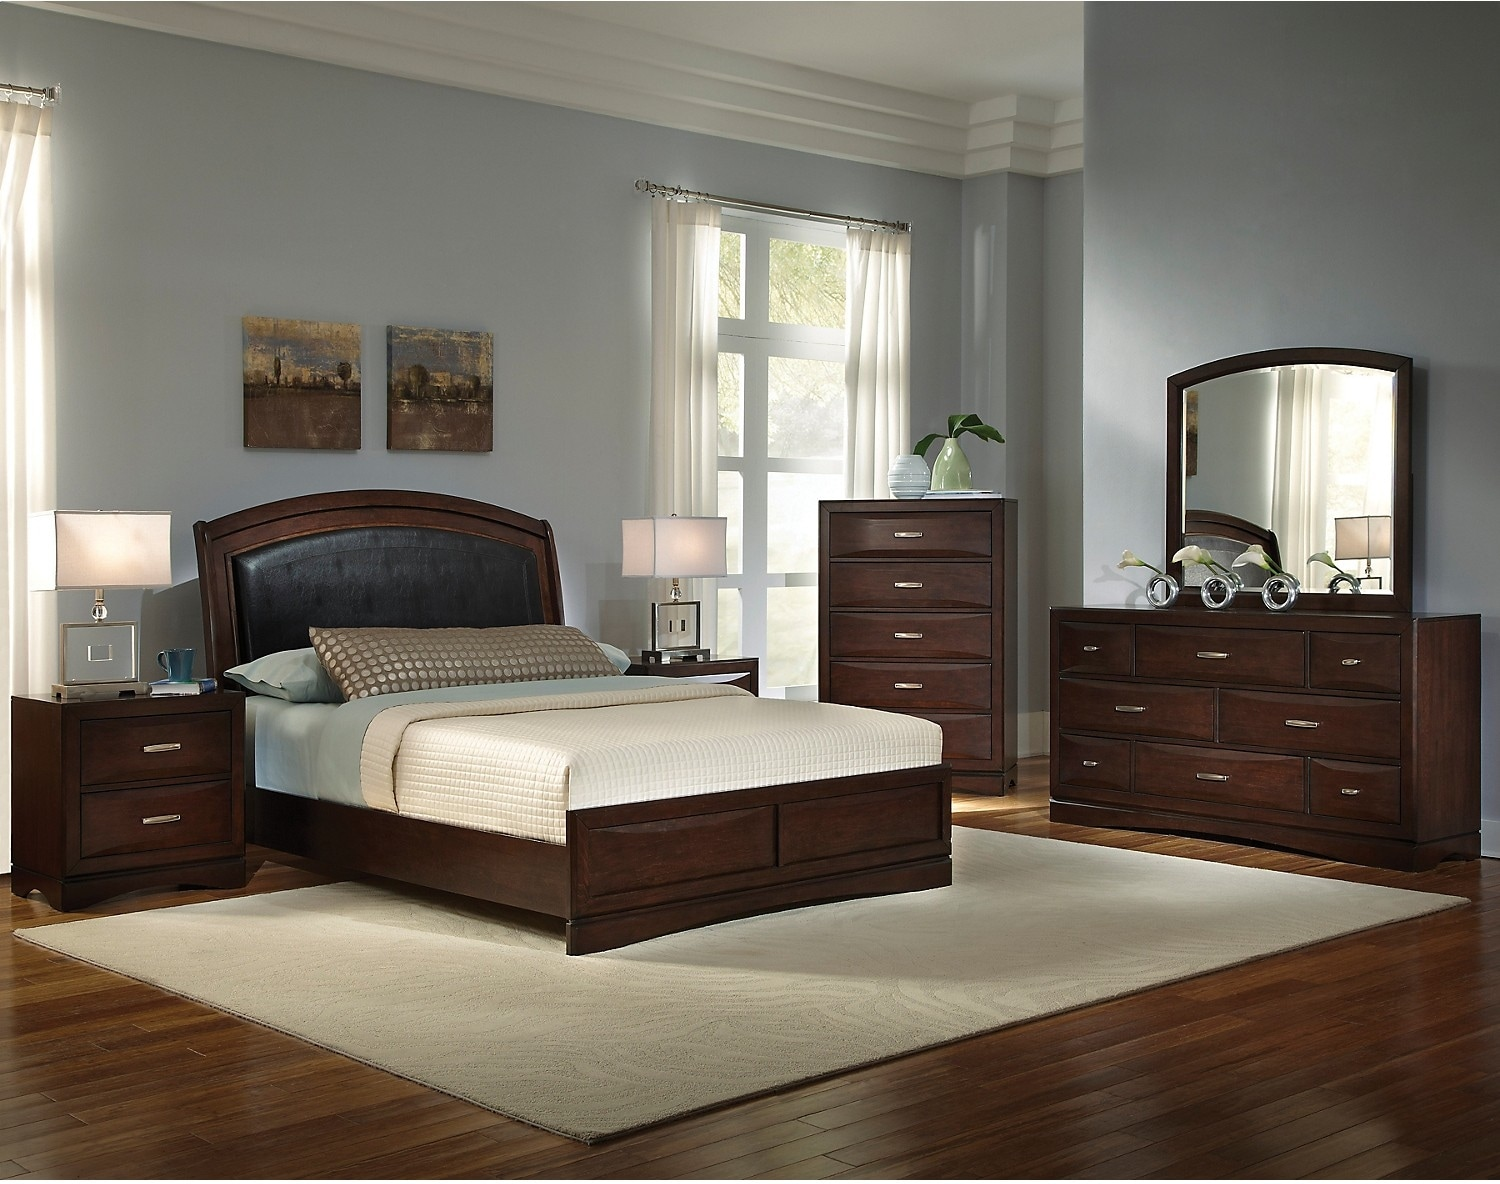 Bedroom Furniture - Beverly 8-Piece Queen Bedroom Set